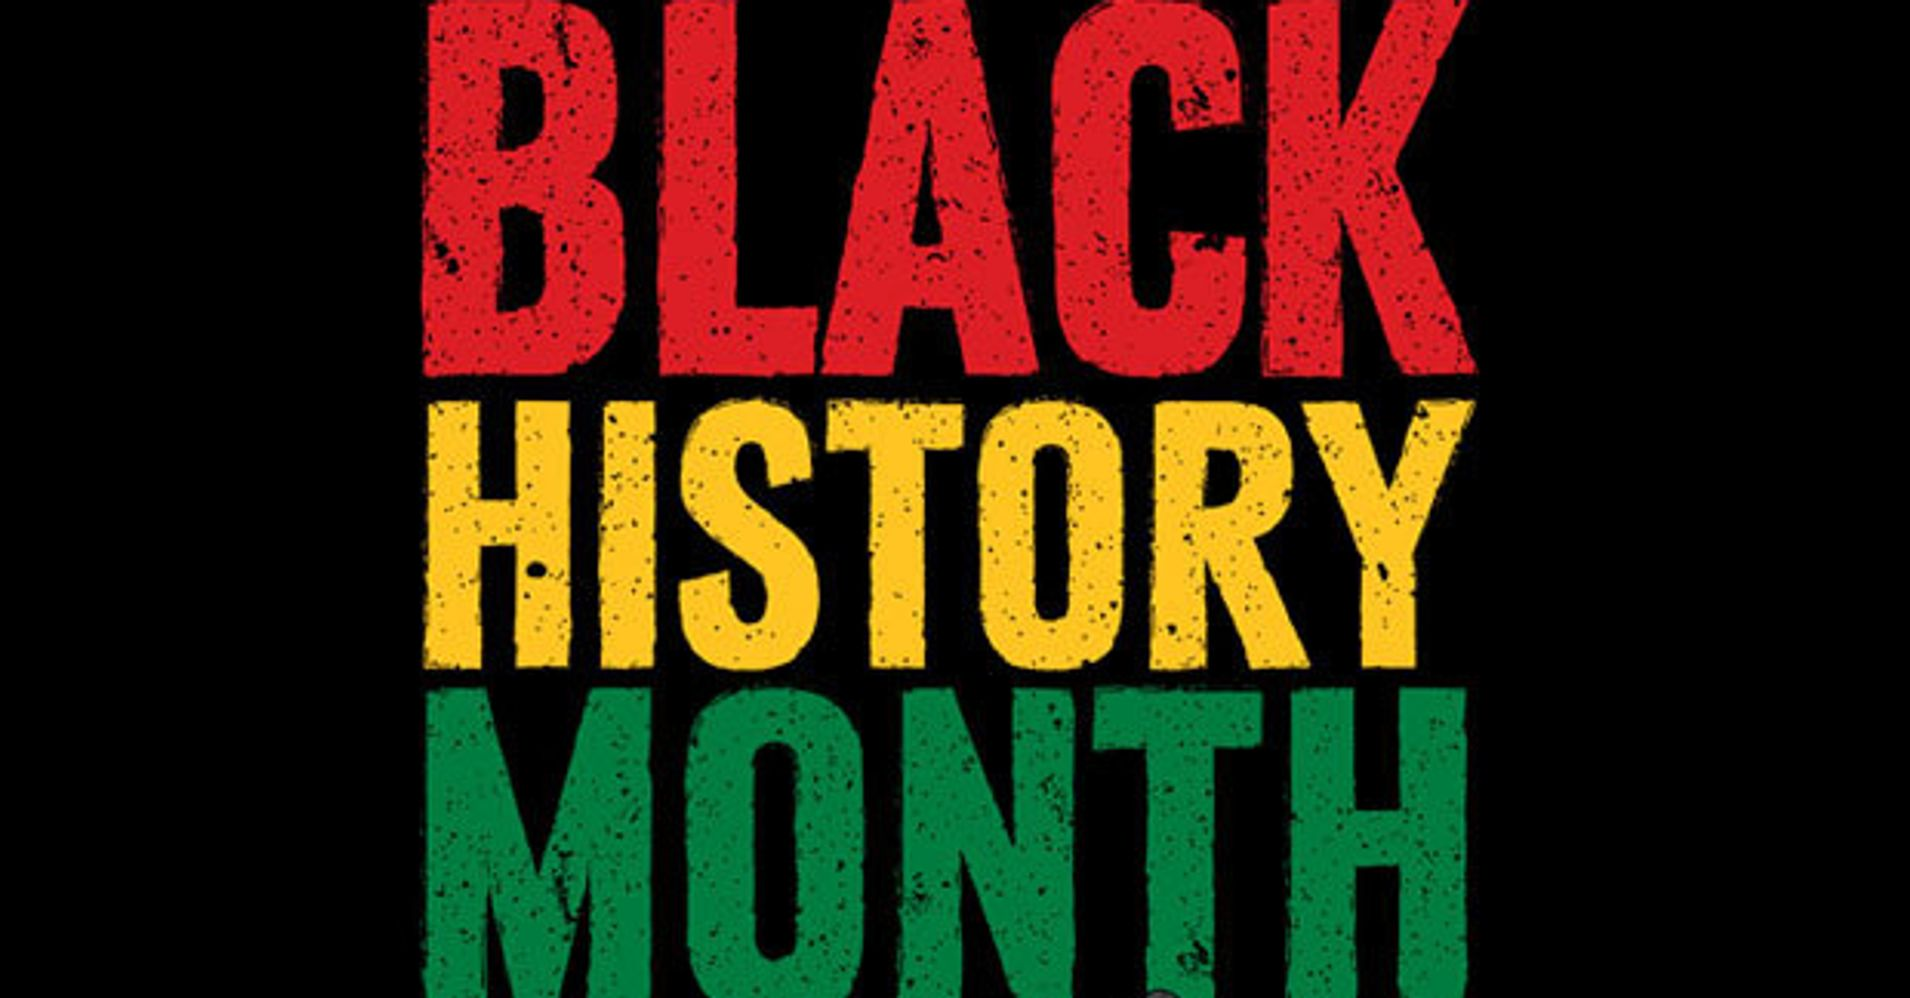 6 ways to celebrate black history month